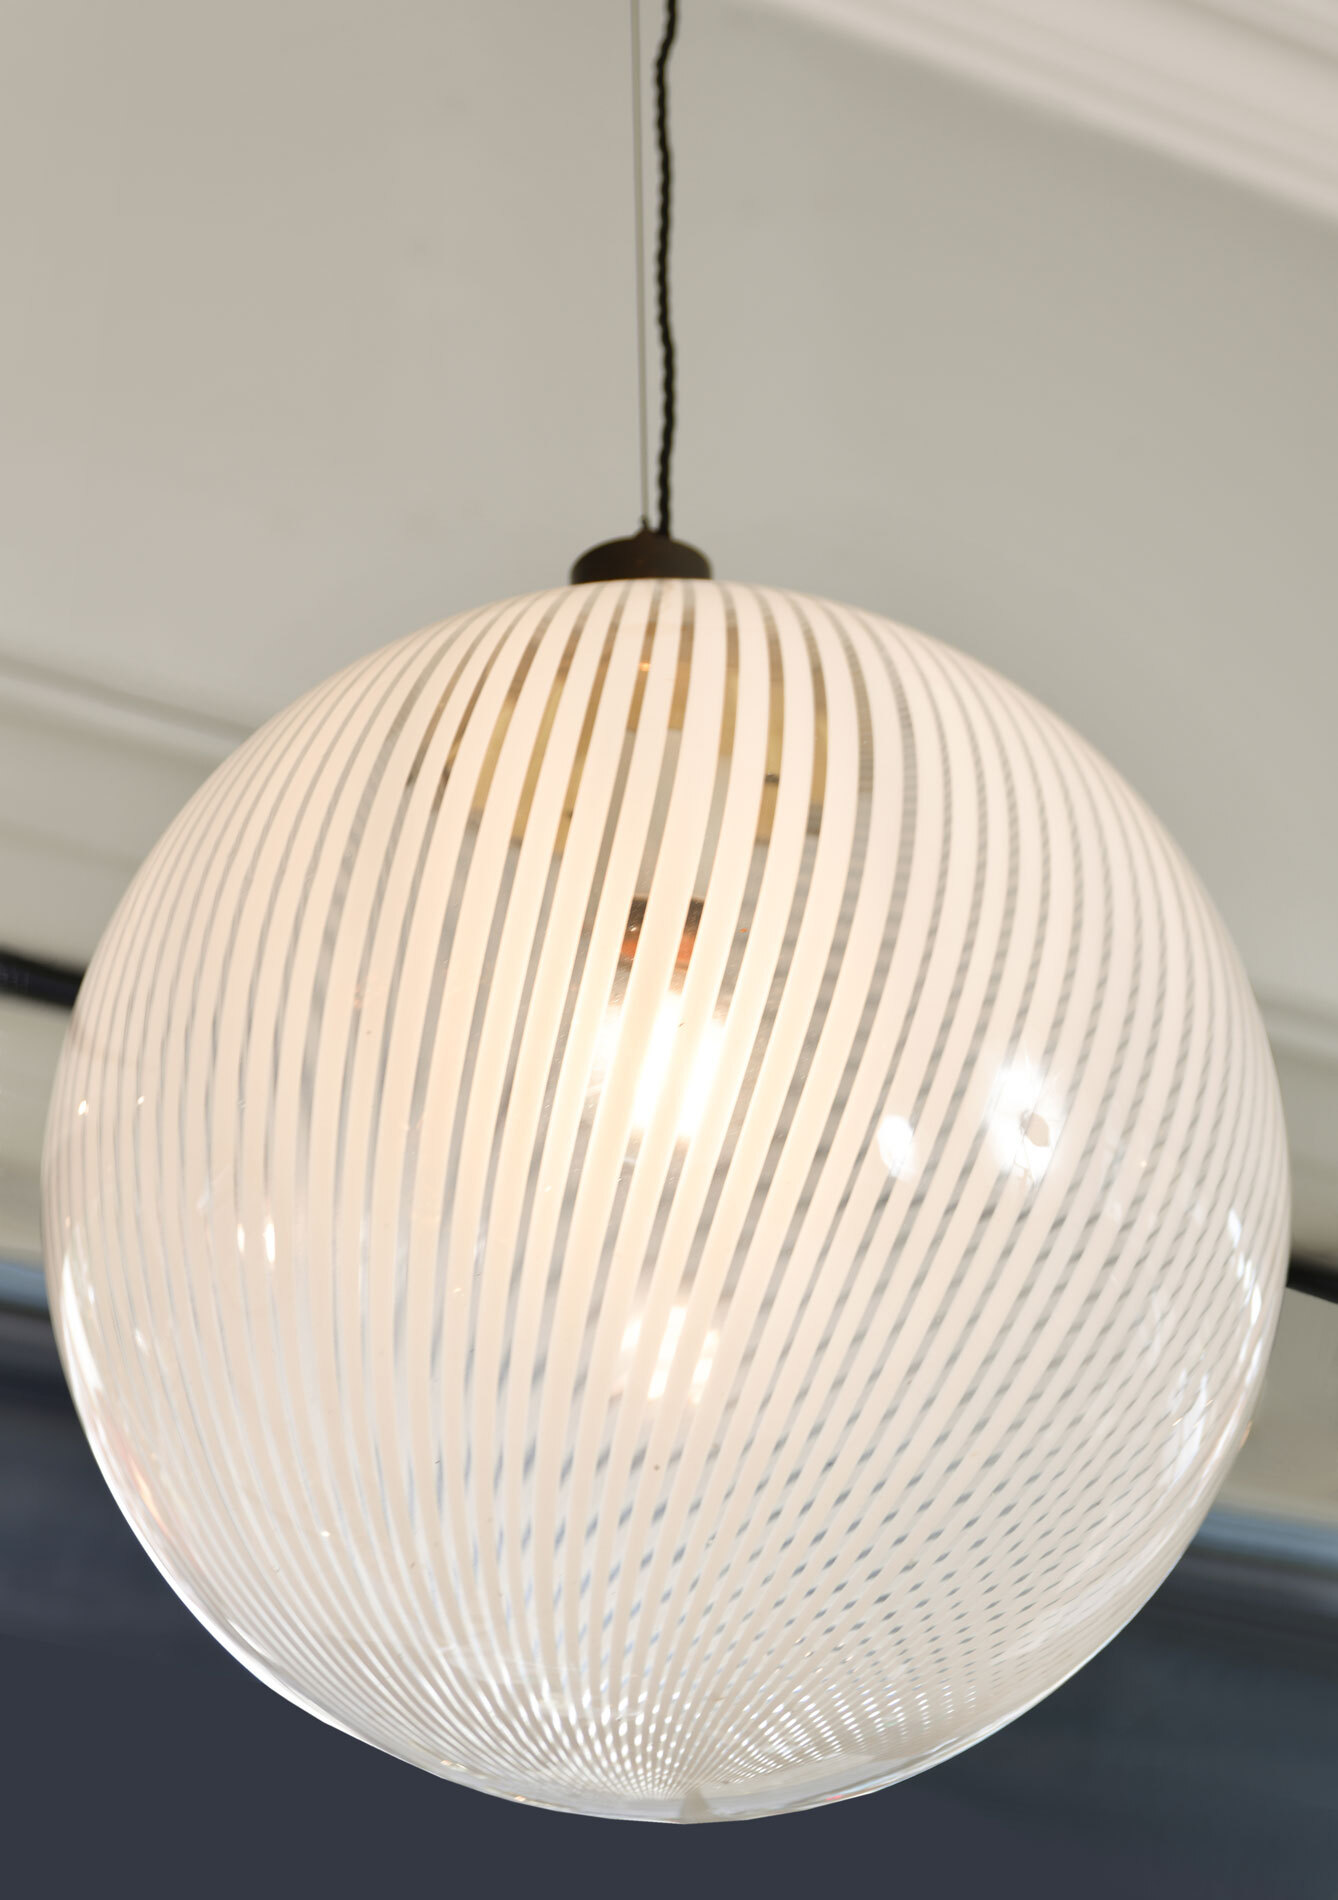 The image for Murano Globe Pendant 02